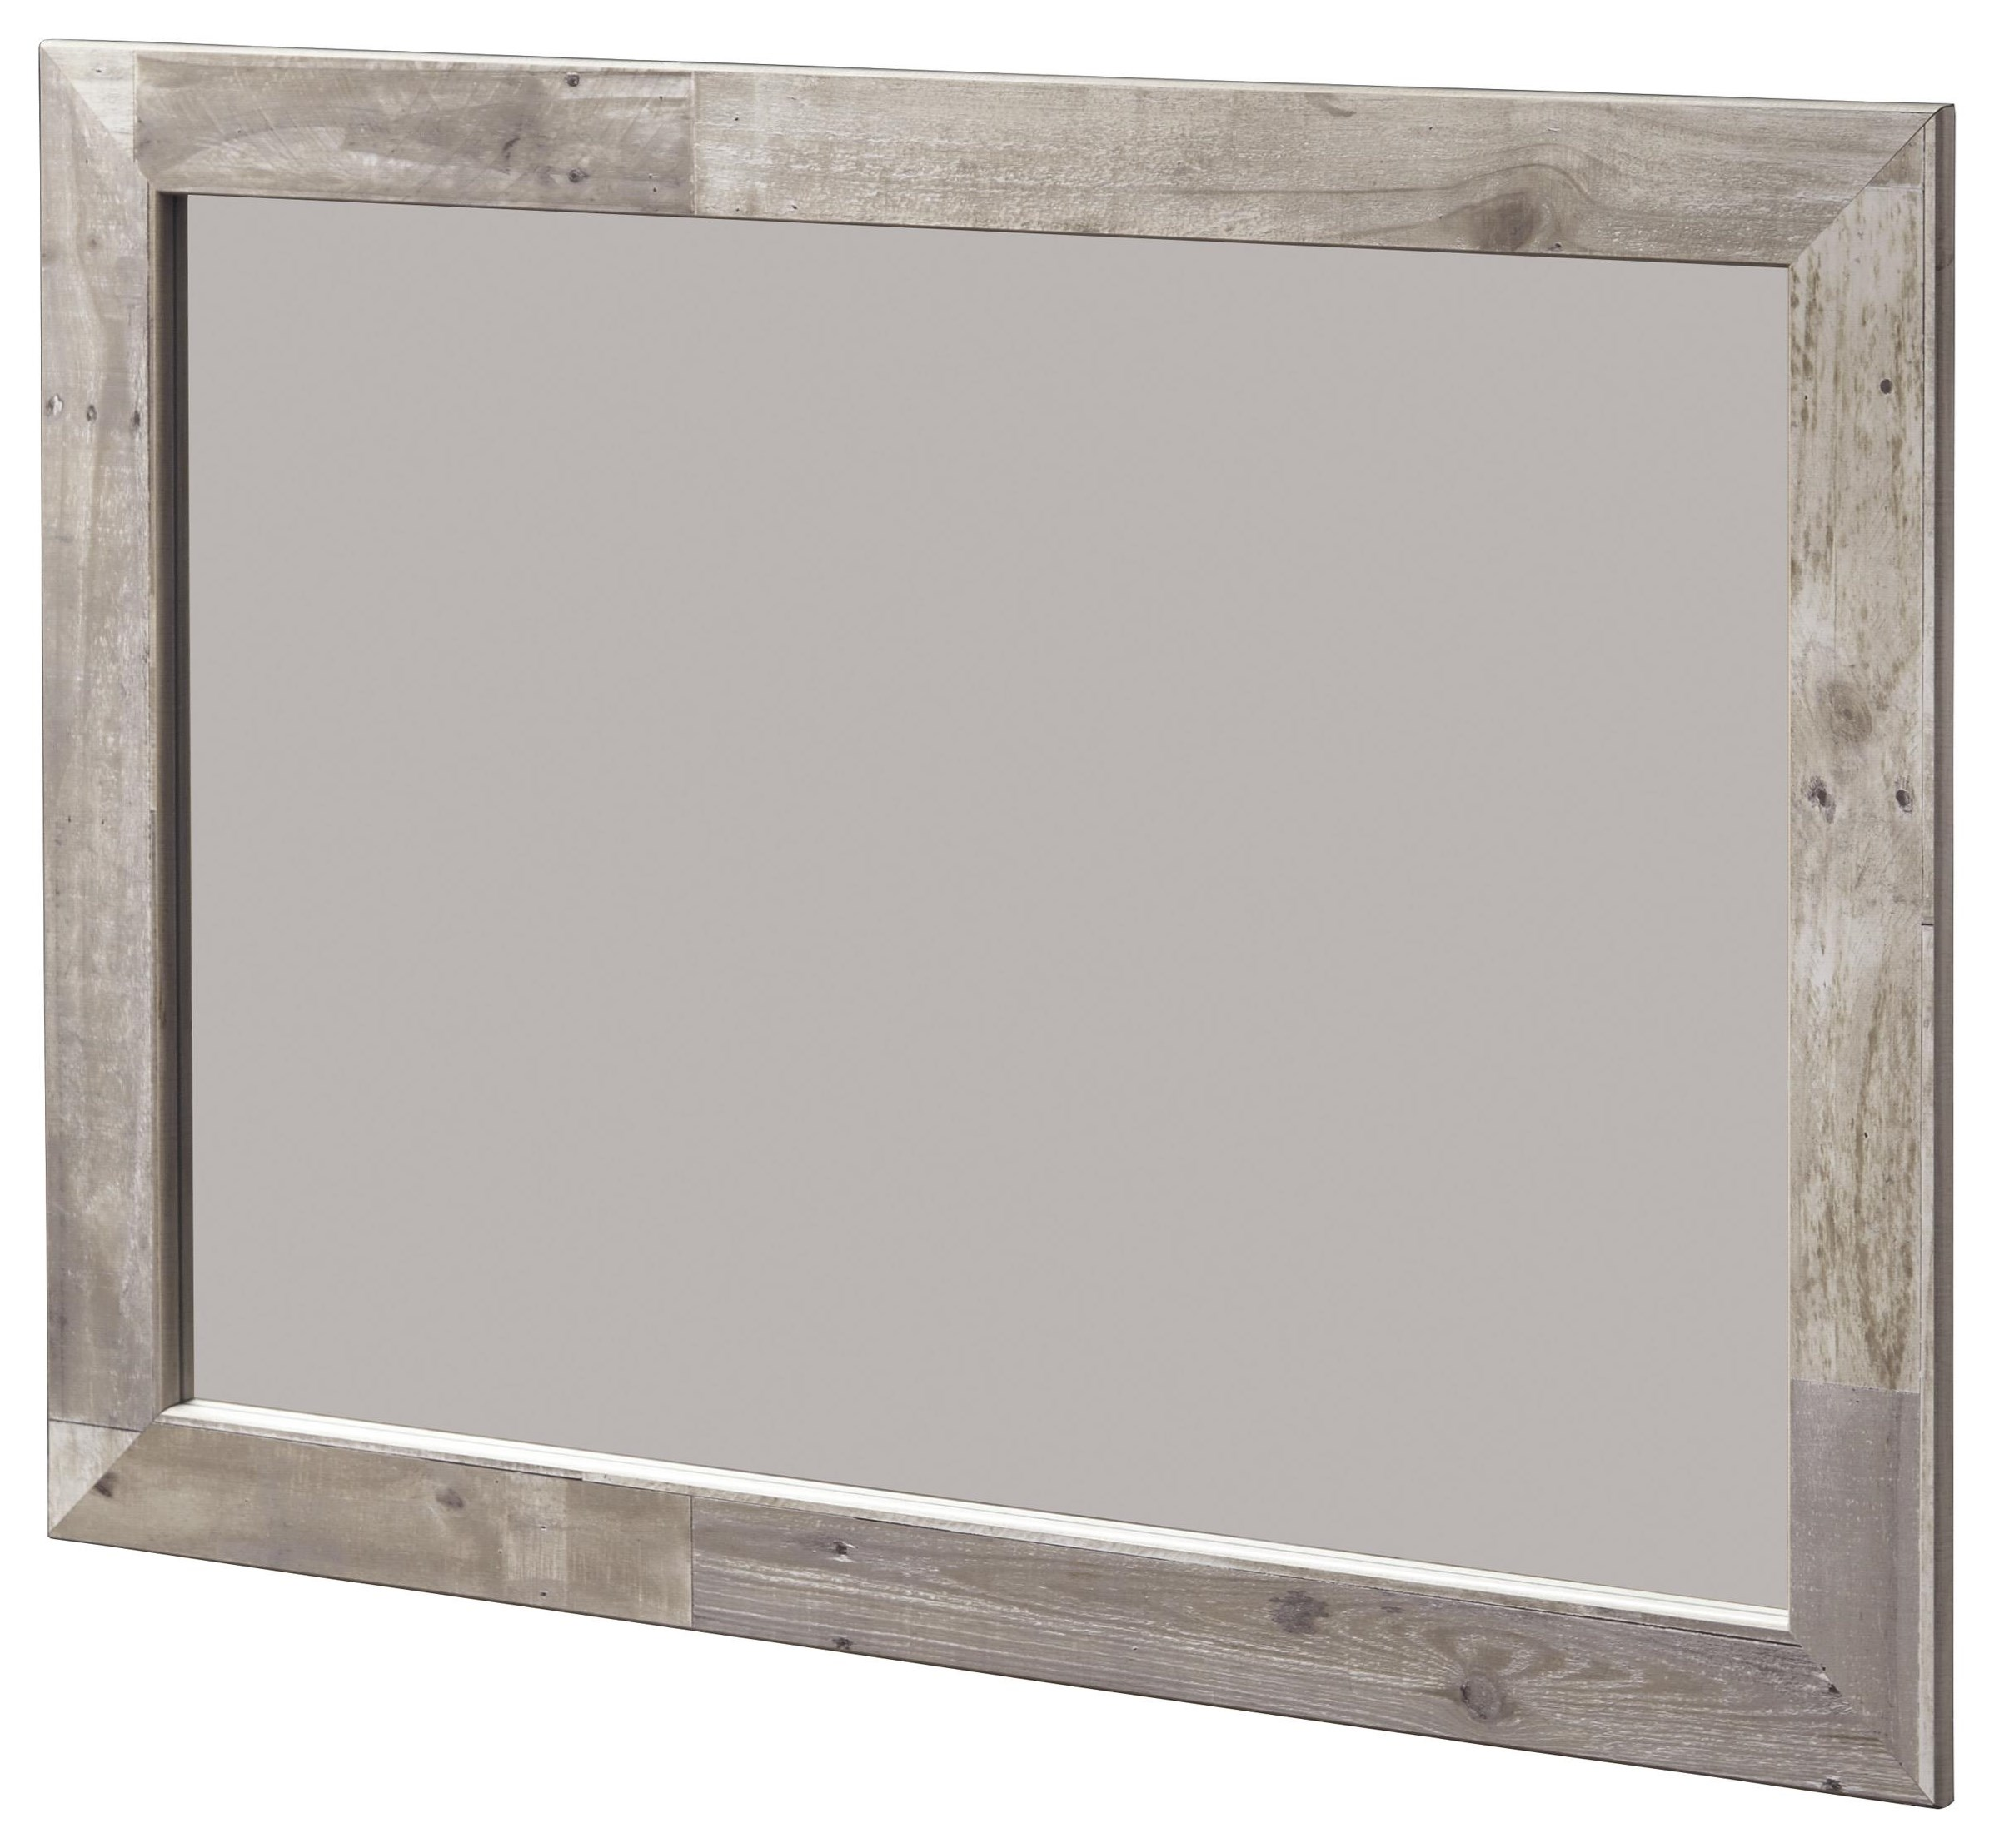 Effie Bedroom Mirror by Signature Design by Ashley at Furniture and ApplianceMart